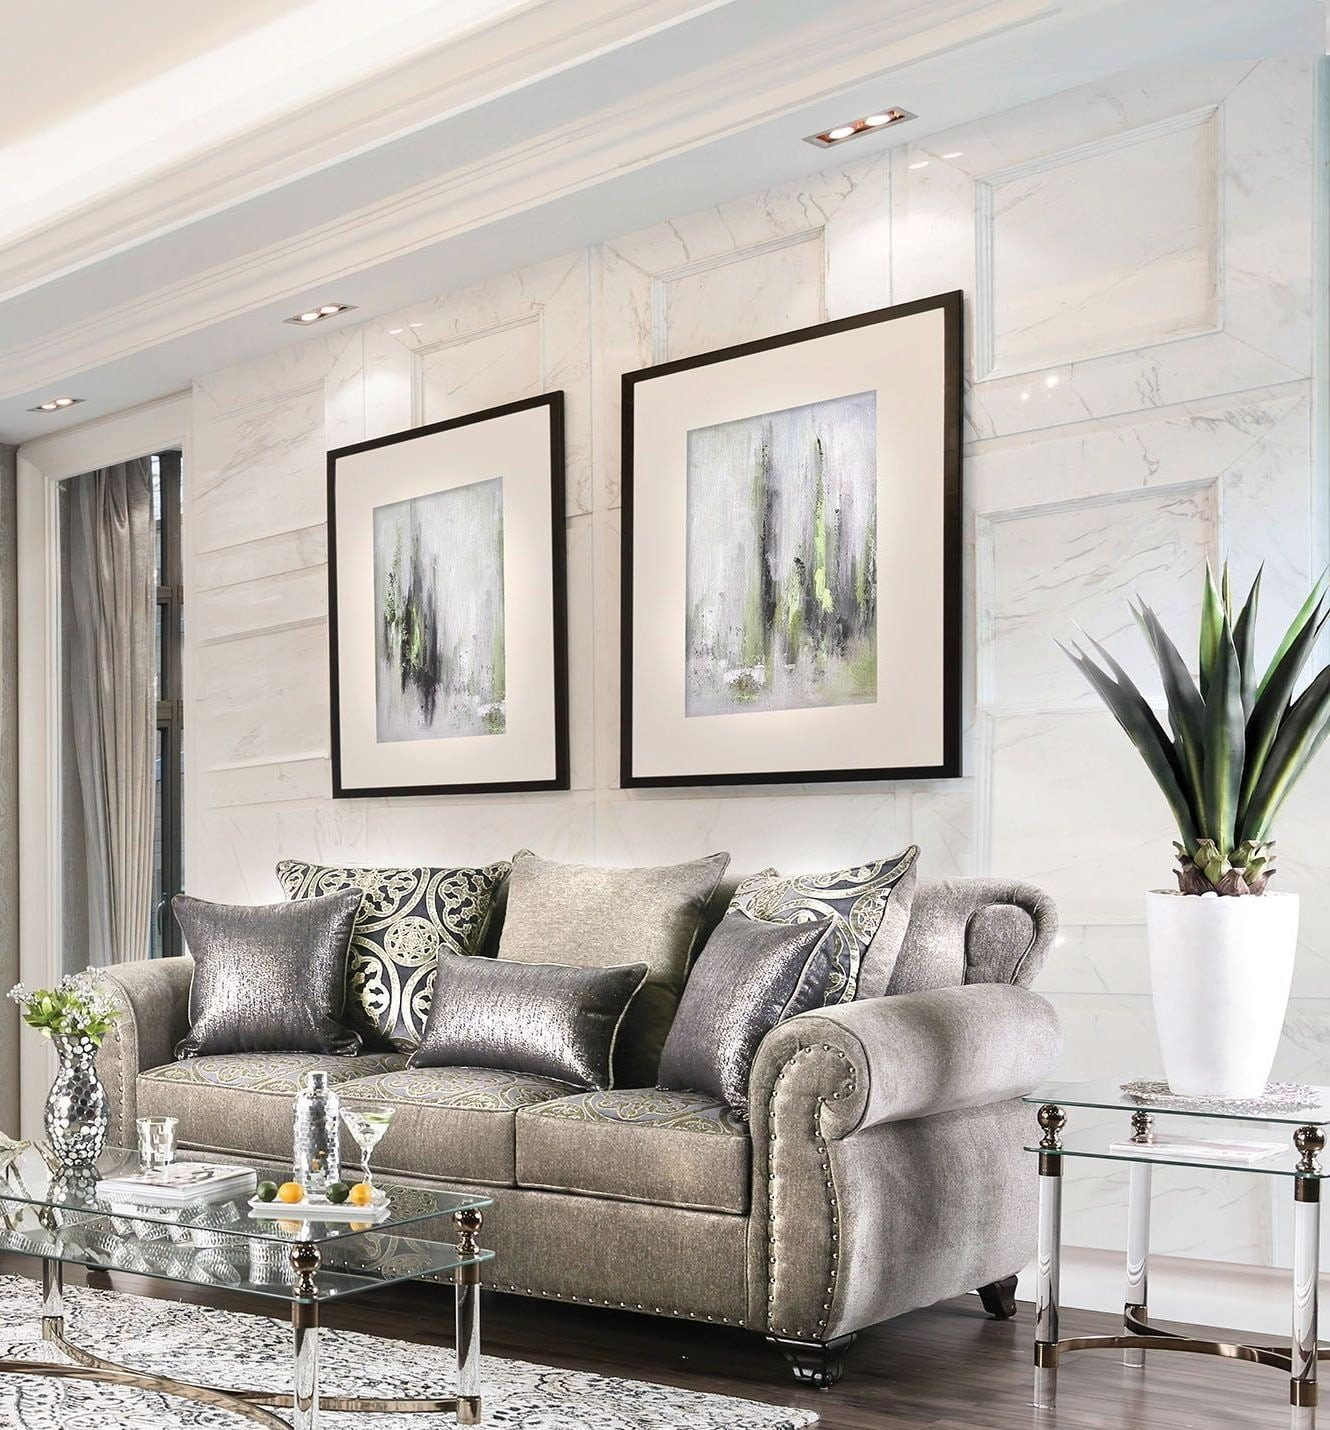 Furniture Of America Living Room Collections: Furniture Of America Sinatra Silver Living Room Set